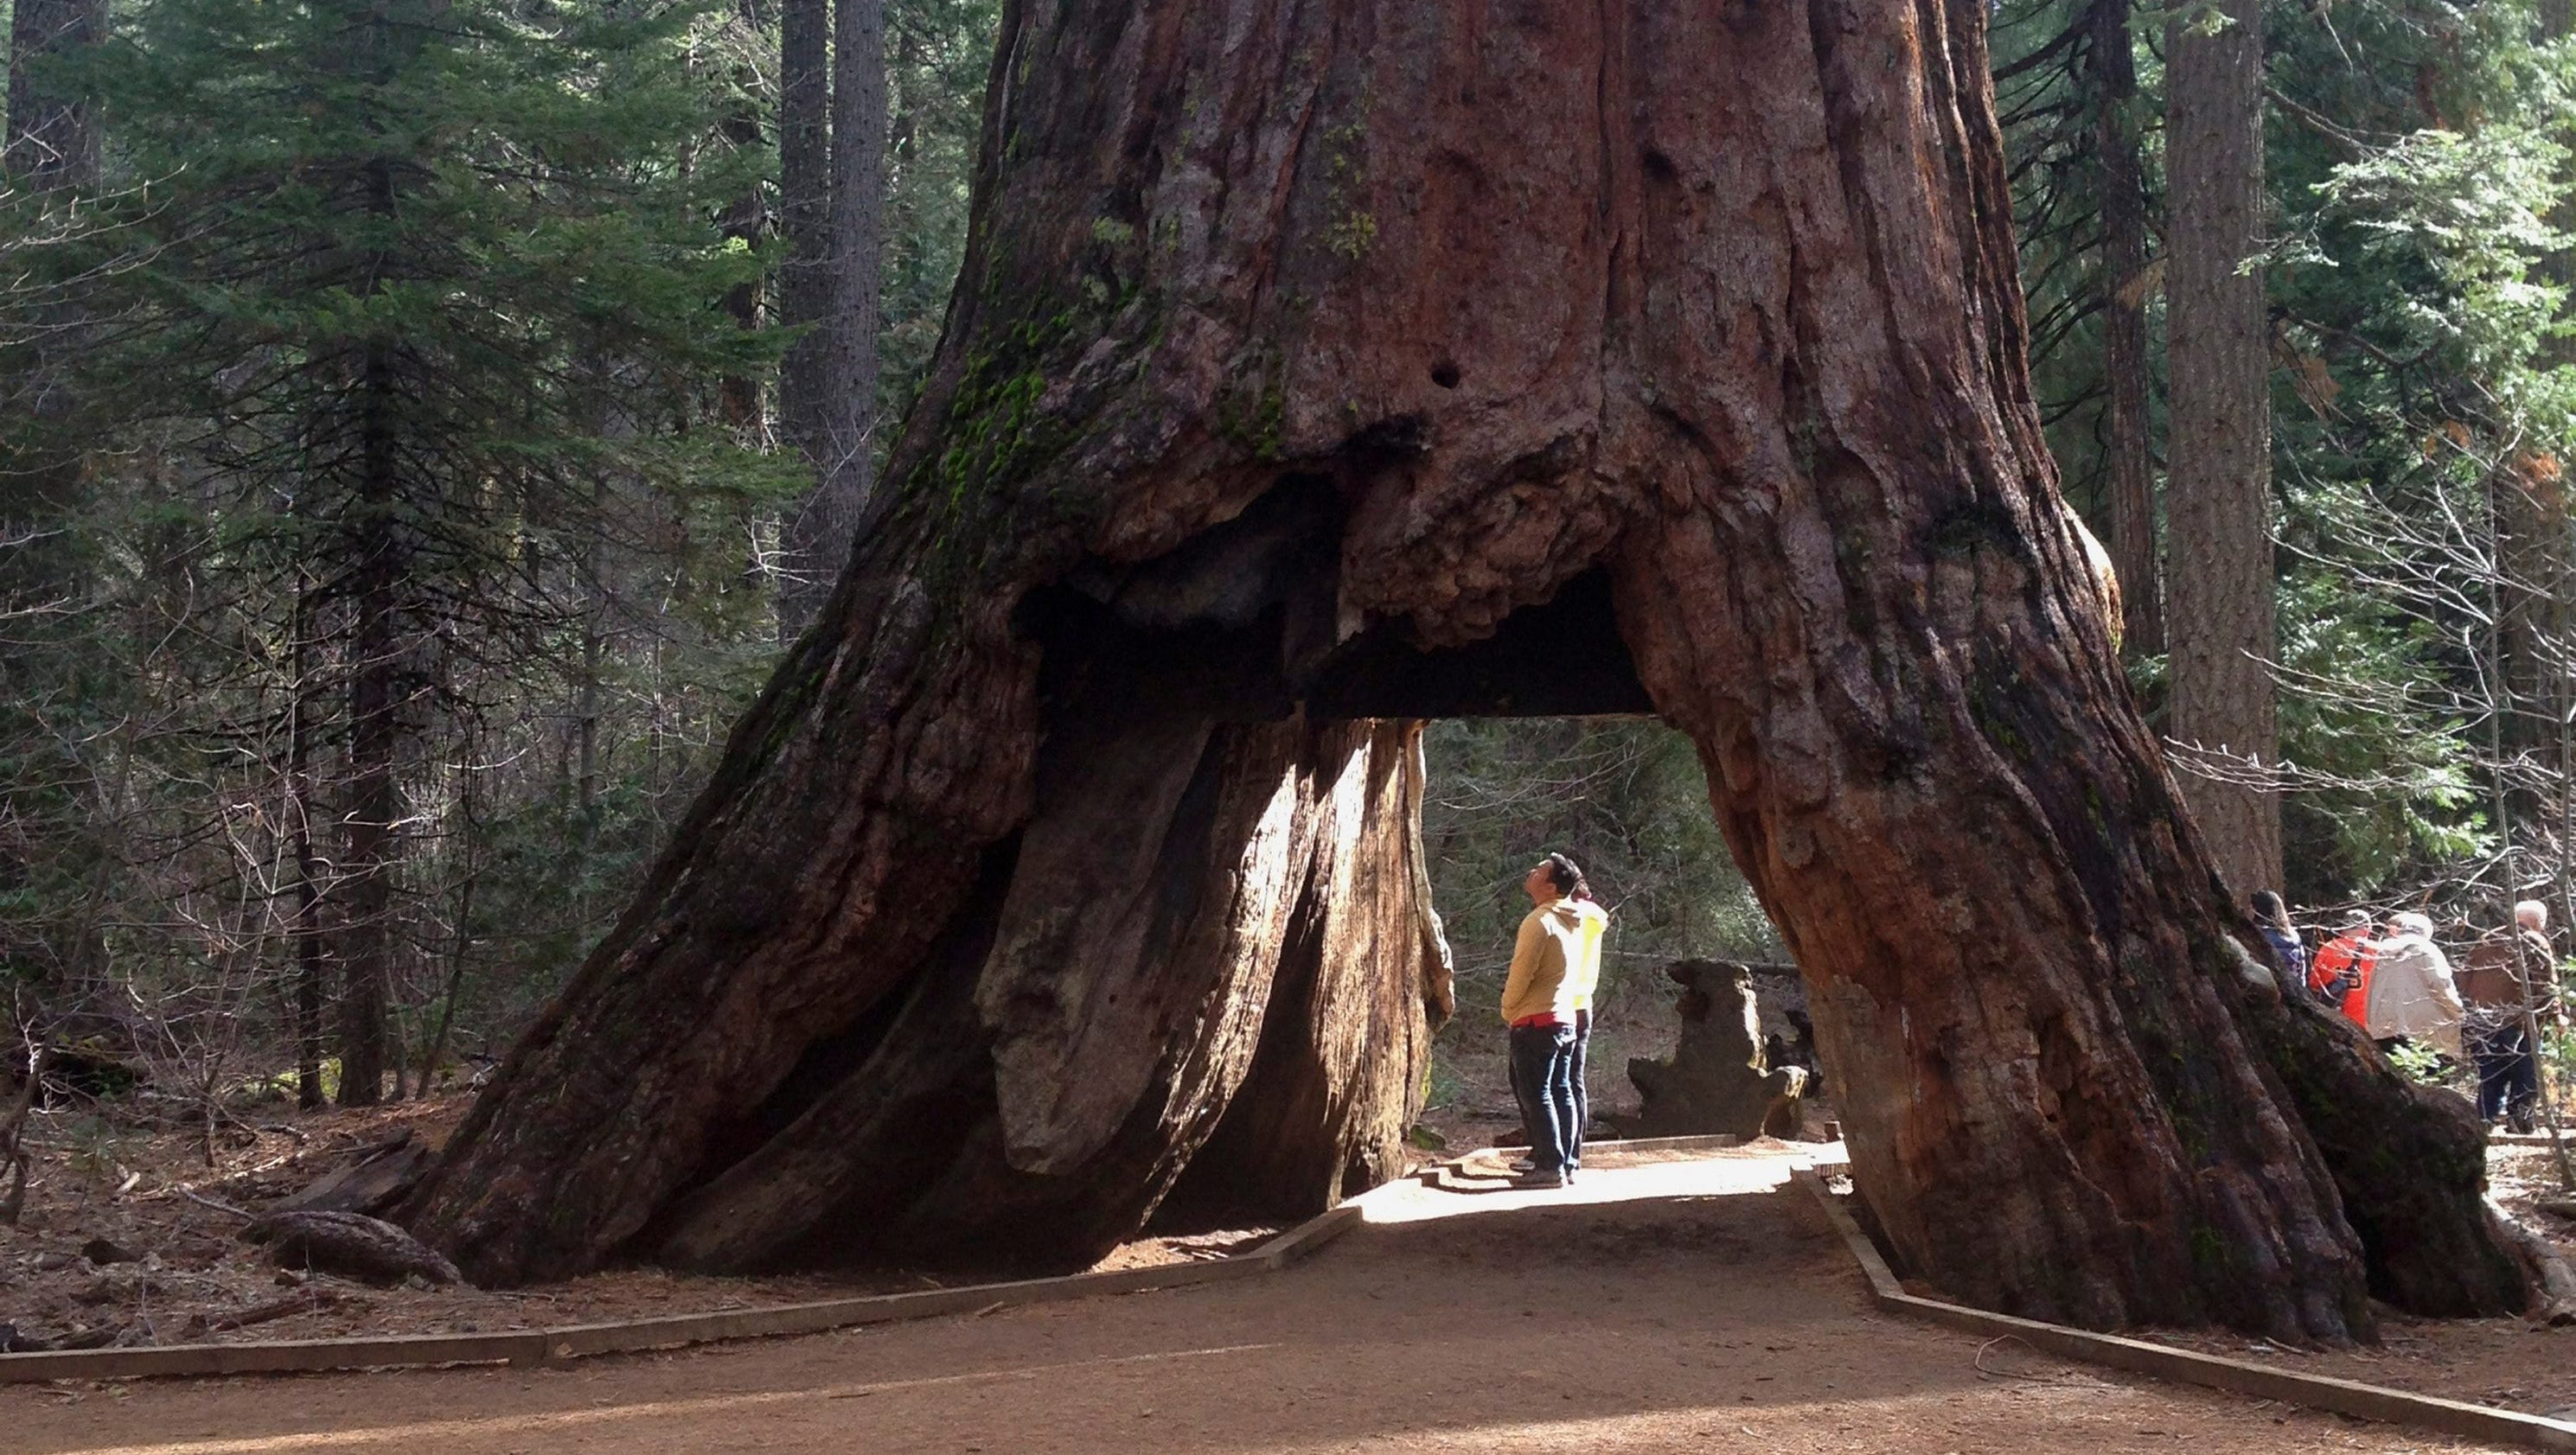 Iconic California Sequoia 39tunnel tree39 destroyed in